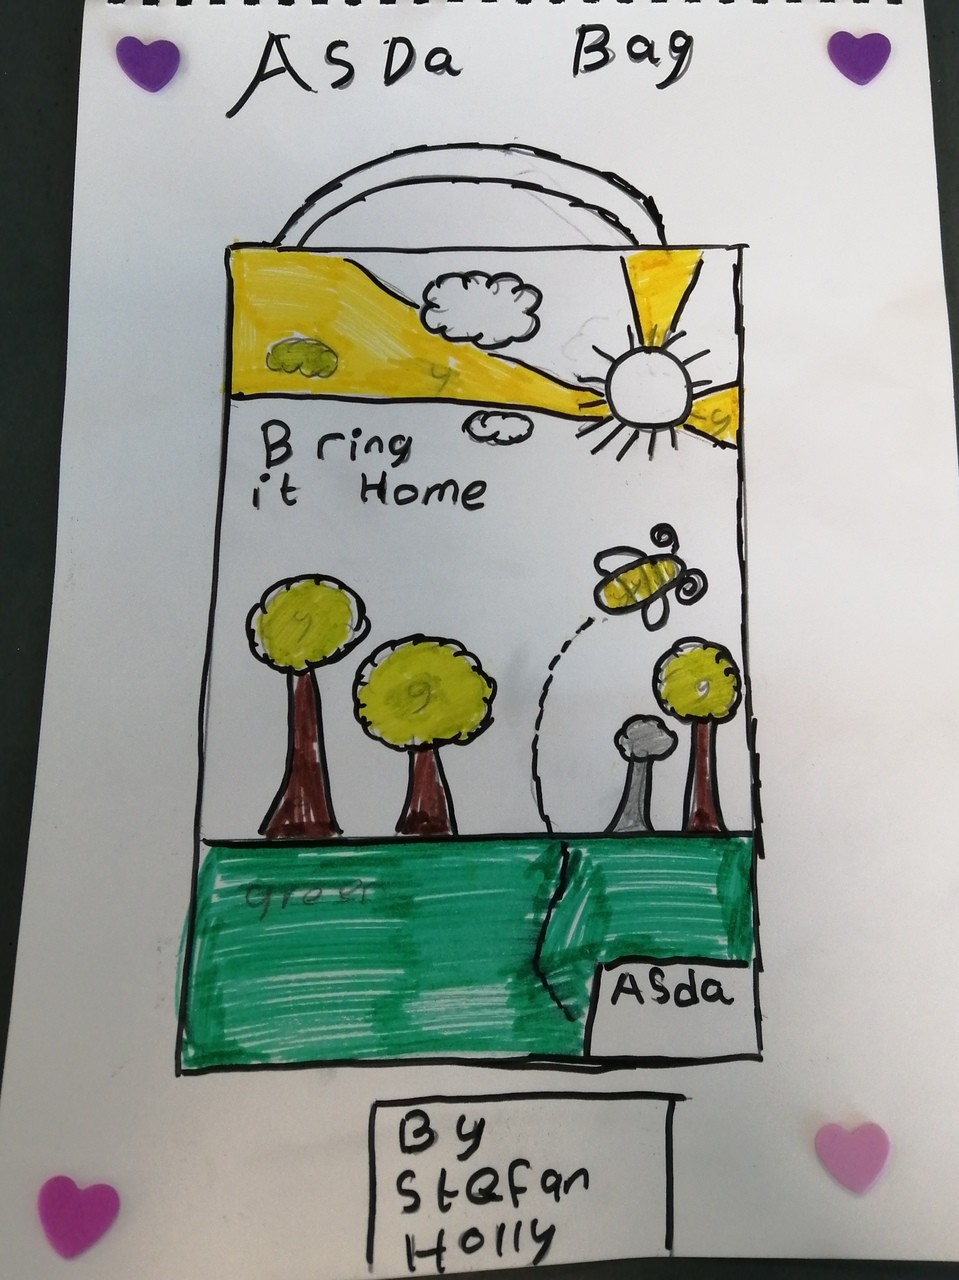 Amazing picture from little Stefan | Asda Clayton Green